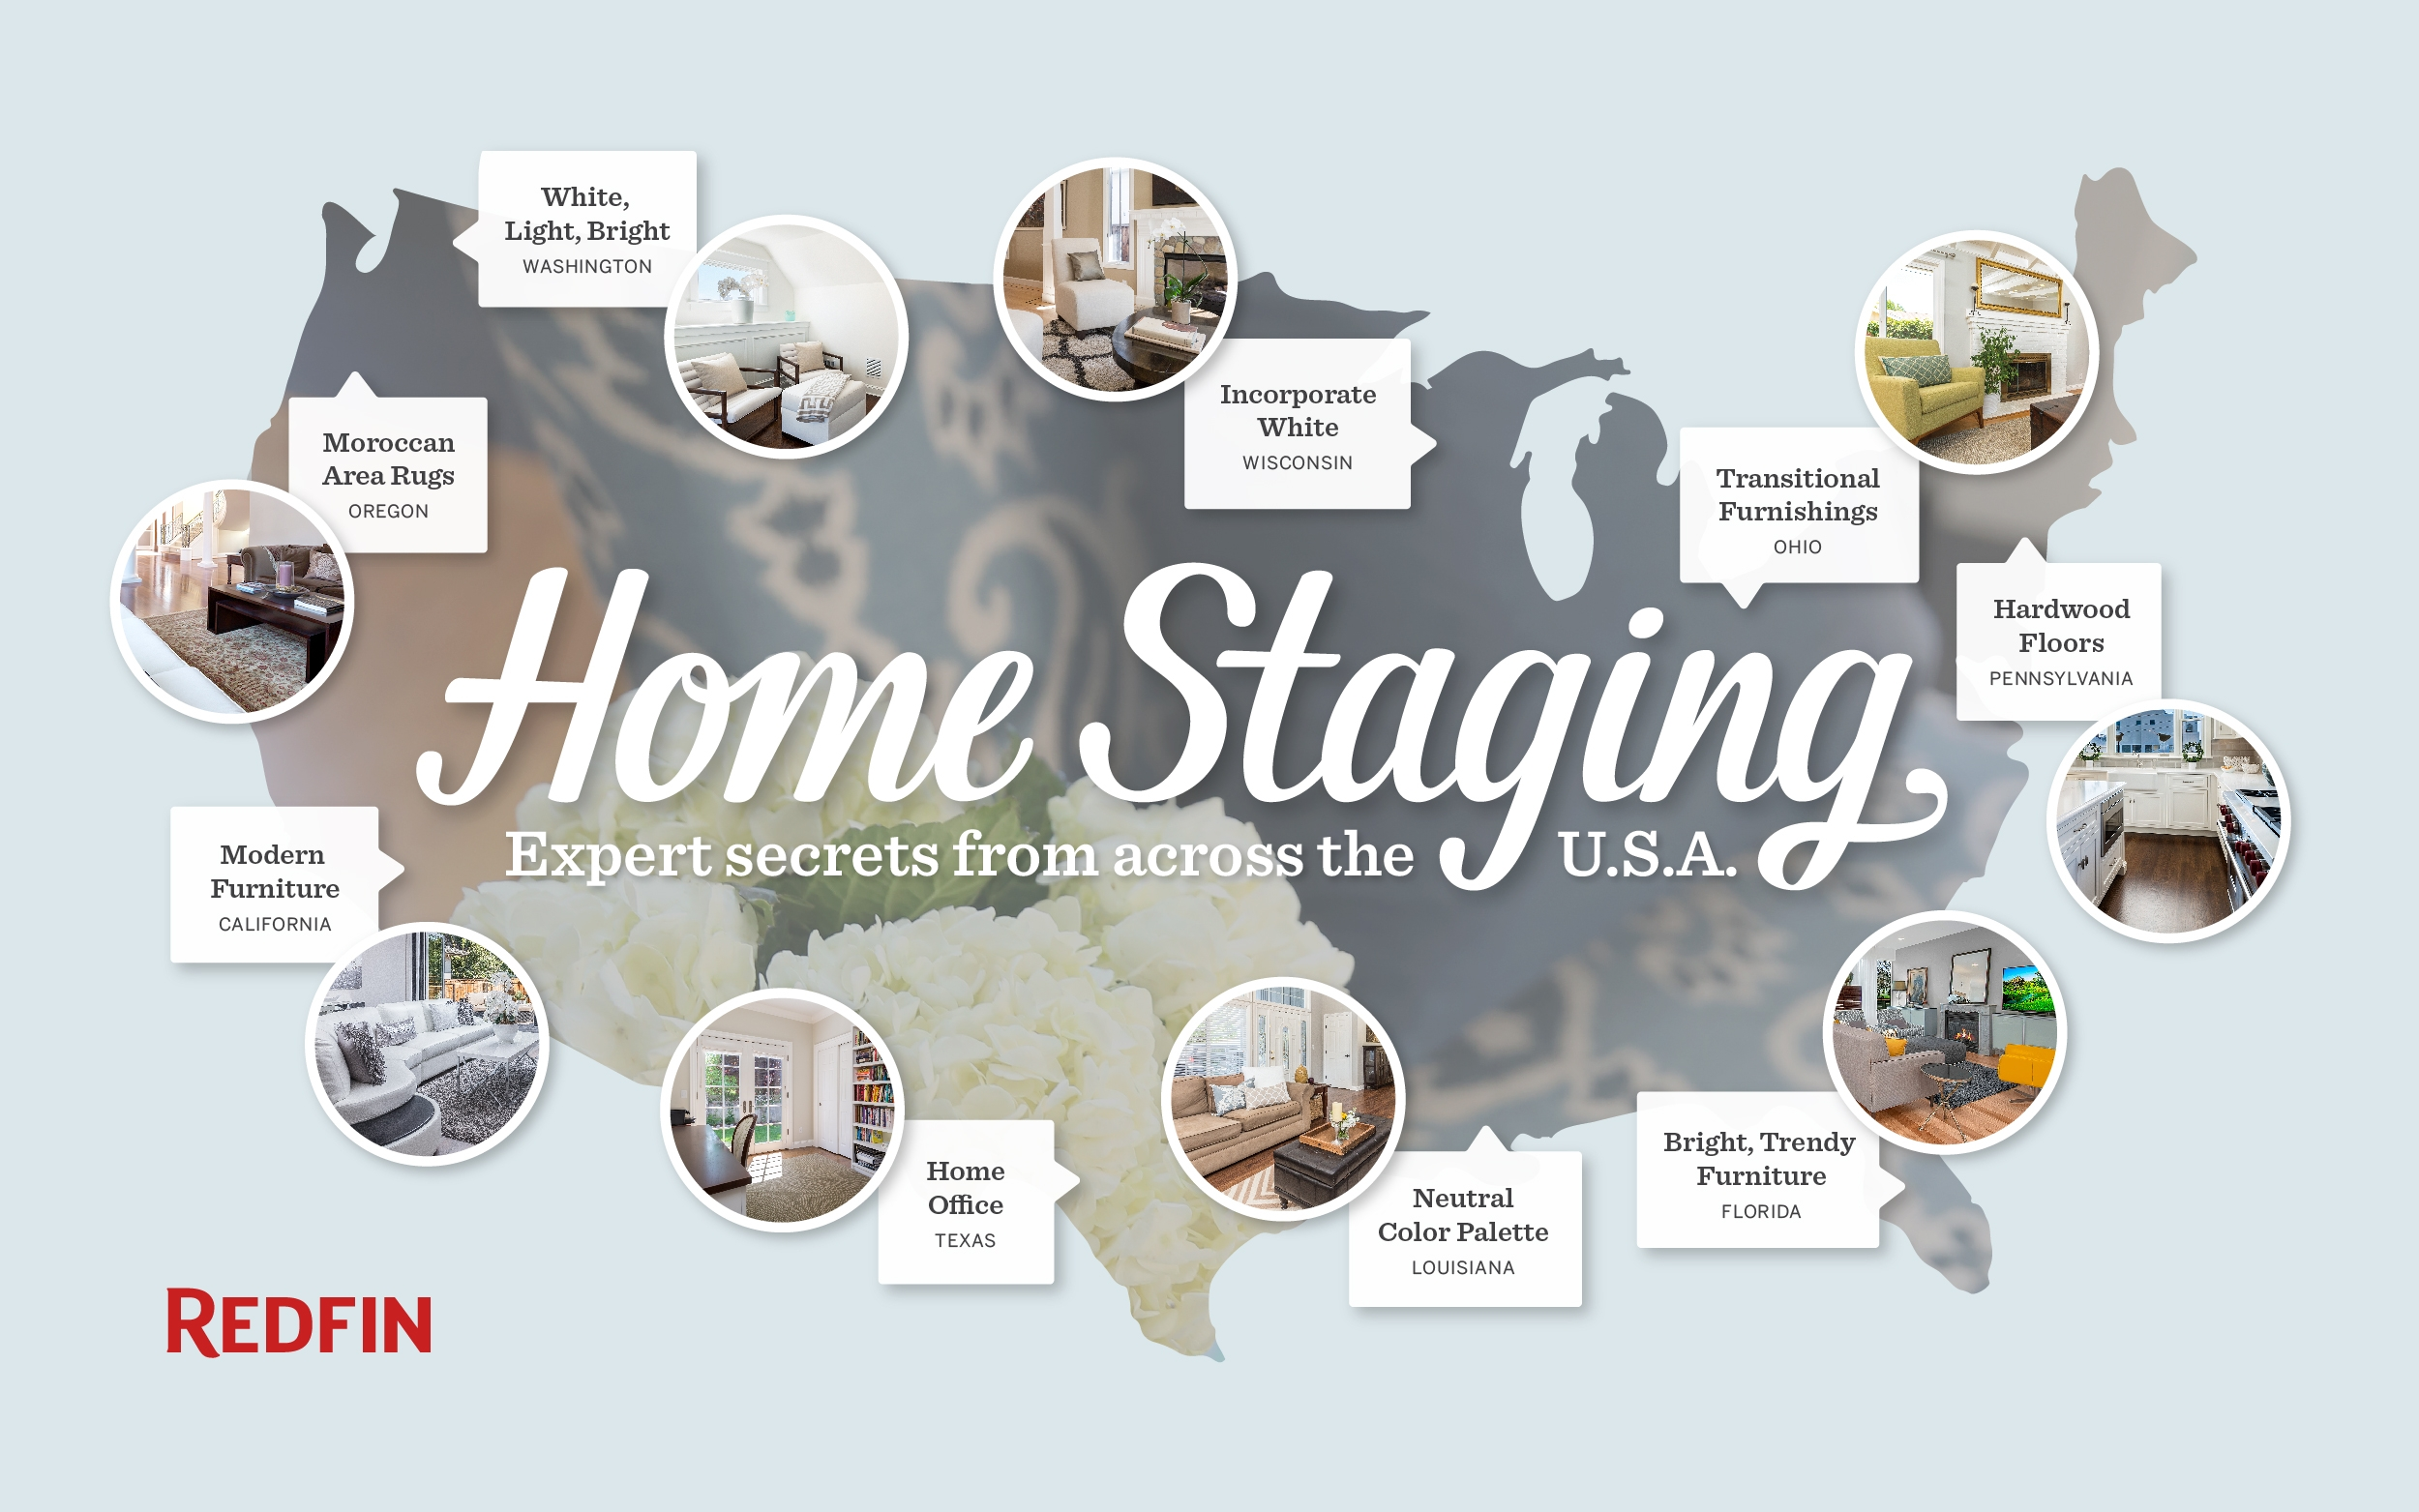 "Representing Indiana in the article "" 37 Home Staging Experts Share the Secret to Appeal to Buyers in Your City""."